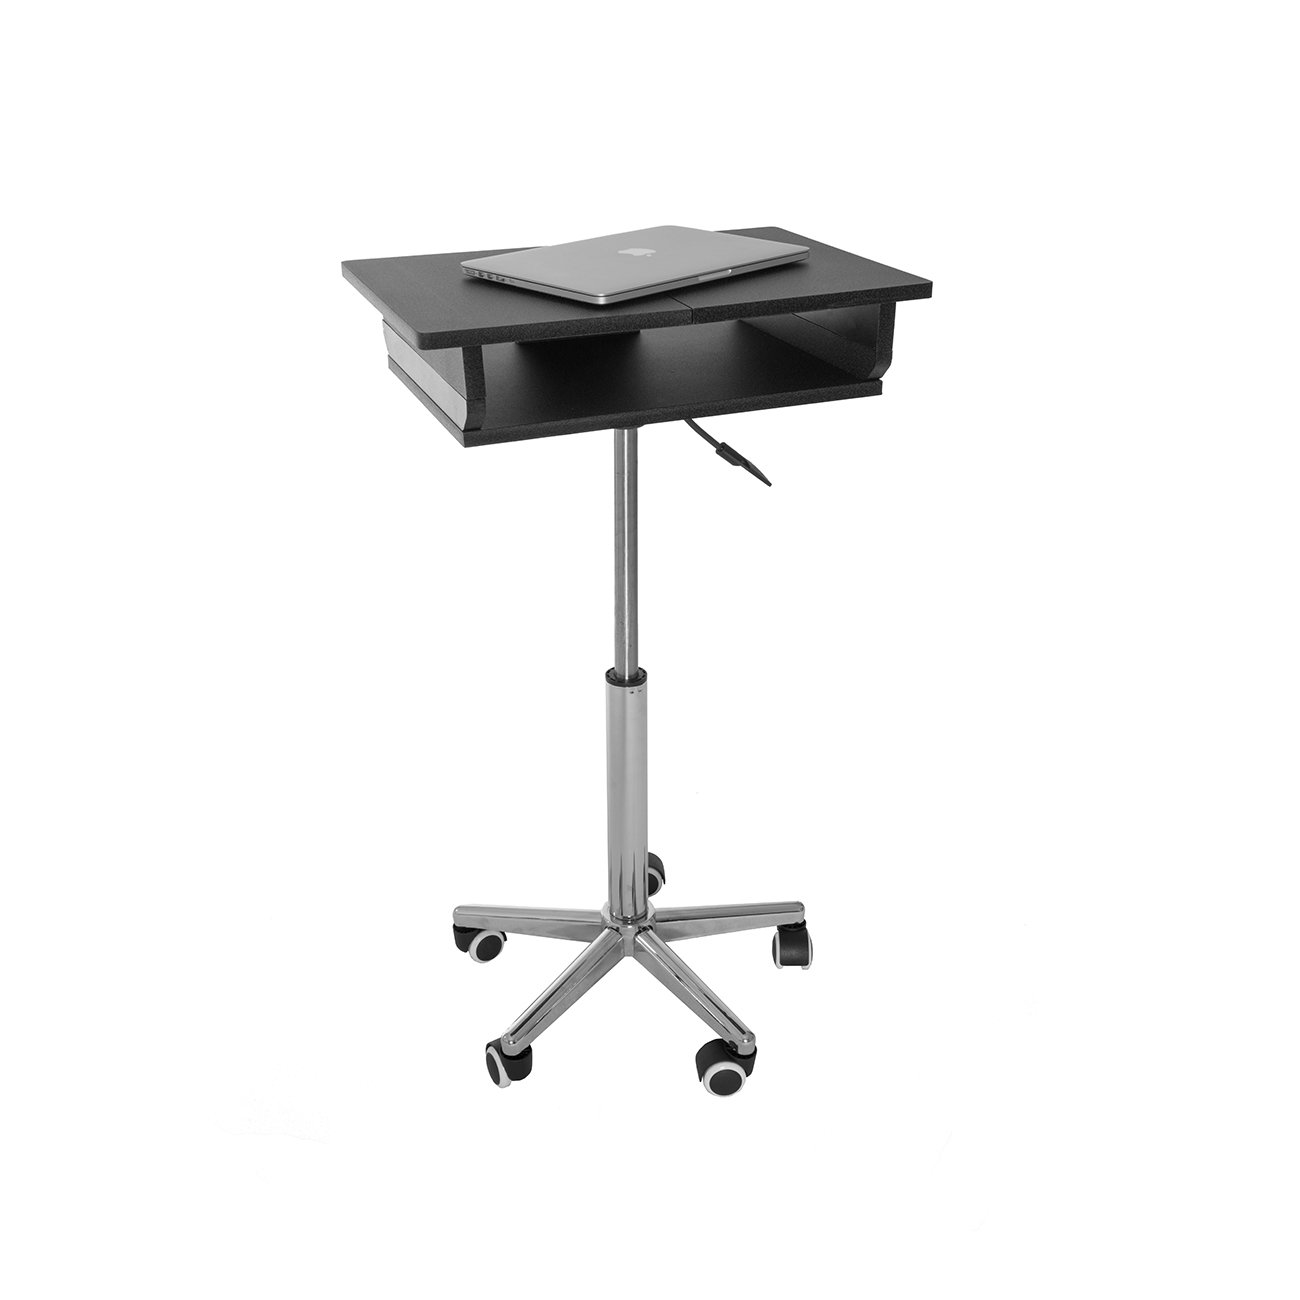 Techni Mobili SIB006-GPH06, Foldable Table Laptop Cart, Graphite RTA-B006-GPH06